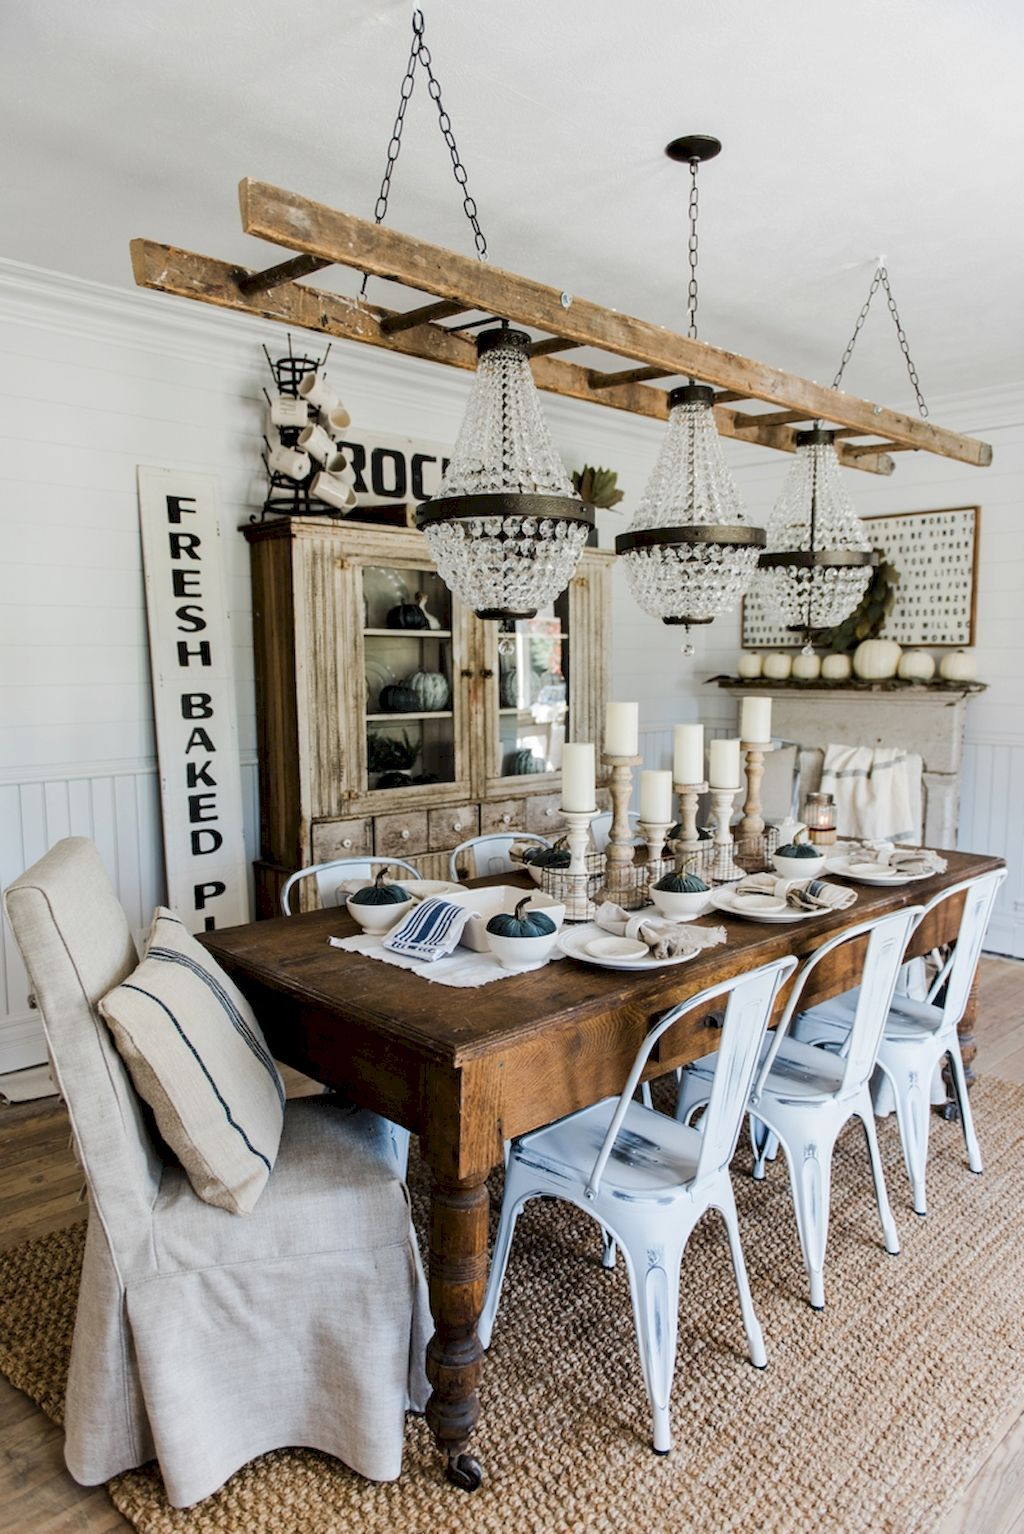 Deco Salle A Manger Style Campagne 55 farmhouse style dining room table and decor ideas | salle